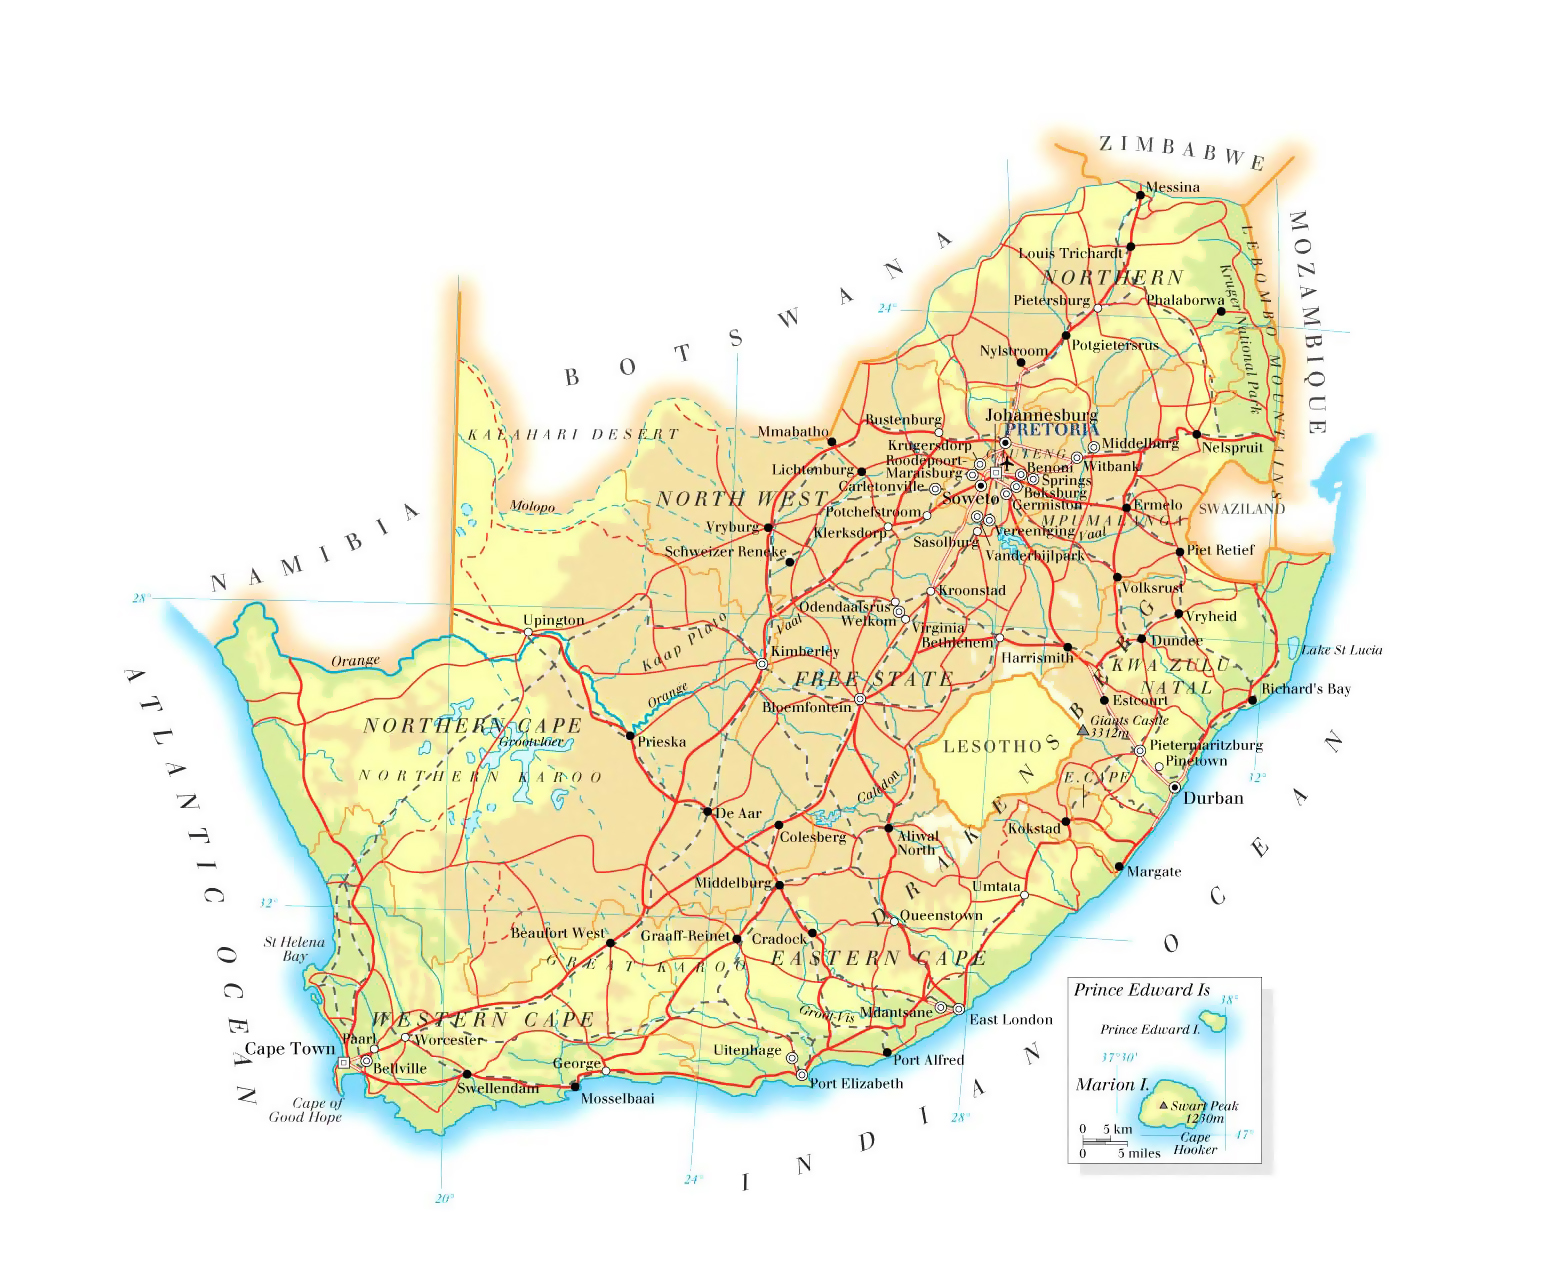 map of south africa roads Large Elevation Map Of South Africa With Roads Railroads Cities map of south africa roads